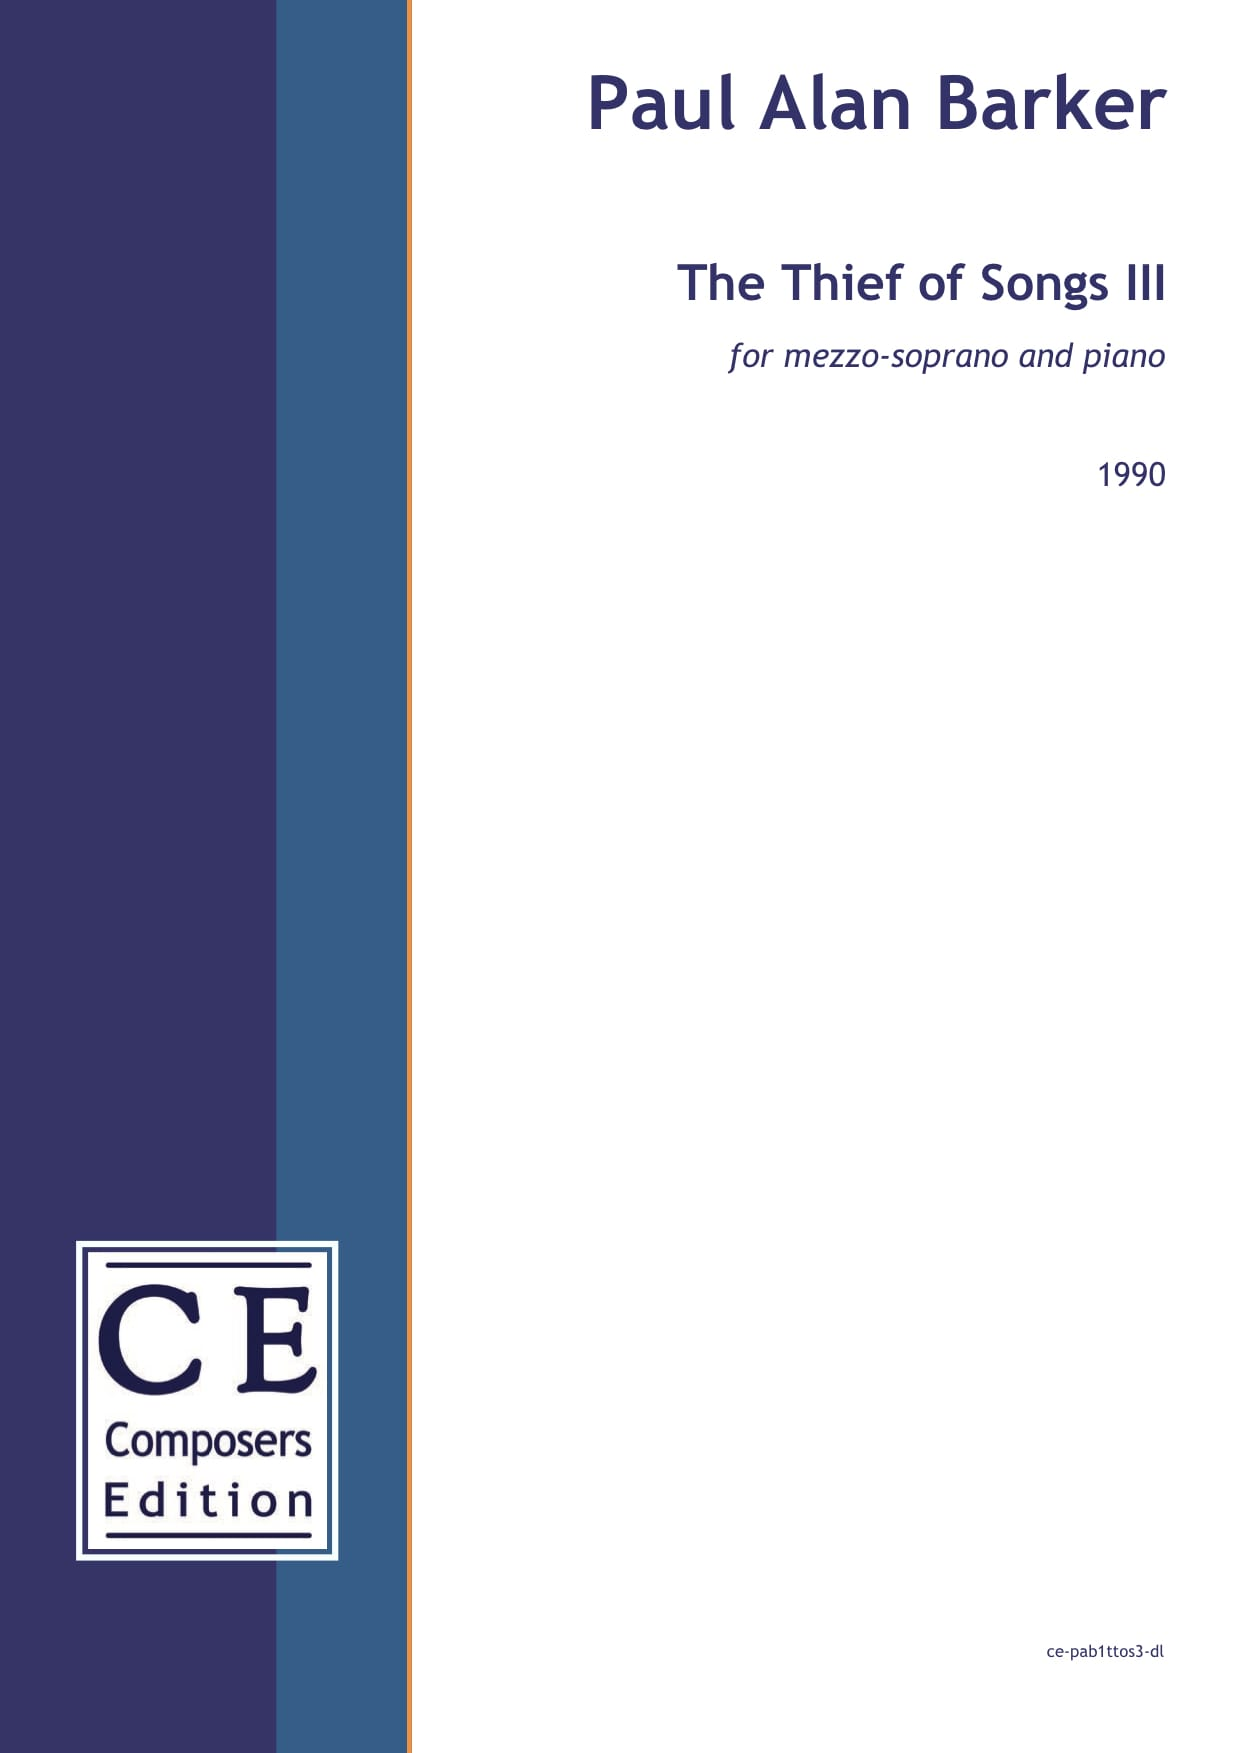 Paul Alan Barker: The Thief of Songs III for mezzo-soprano and piano